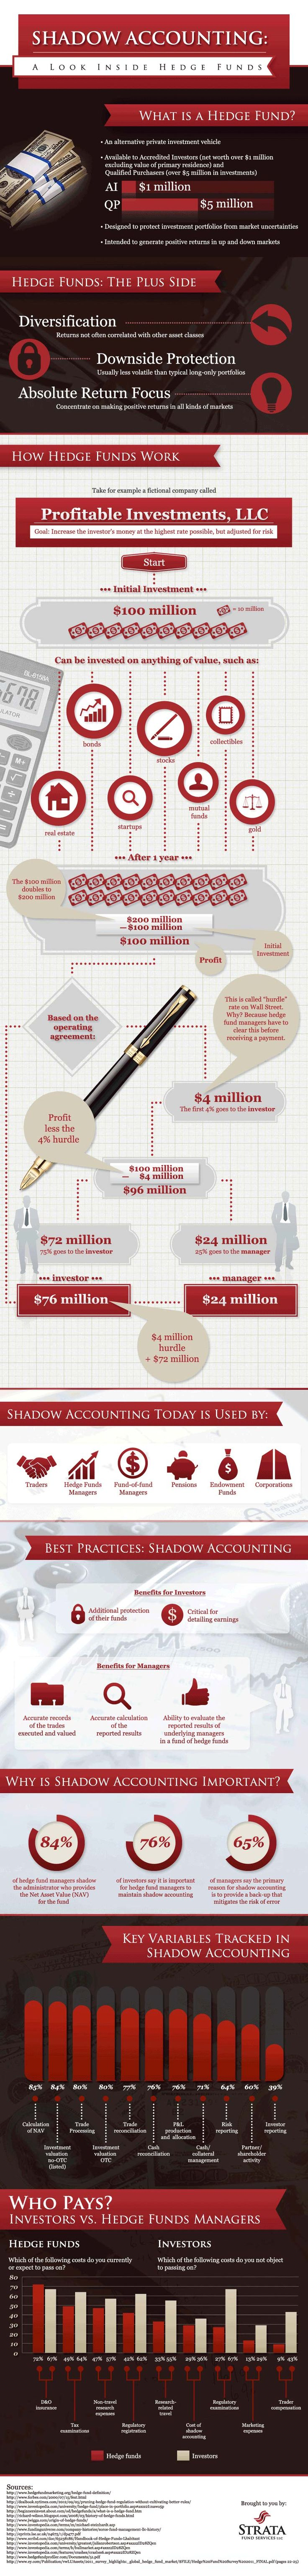 #INFOgraphic > Shadow Accounting Hedge Funds: Learn about the essentials and the importance of shadow accounting to hedge fund management.  > http://infographicsmania.com/shadow-accounting-hedge-funds/